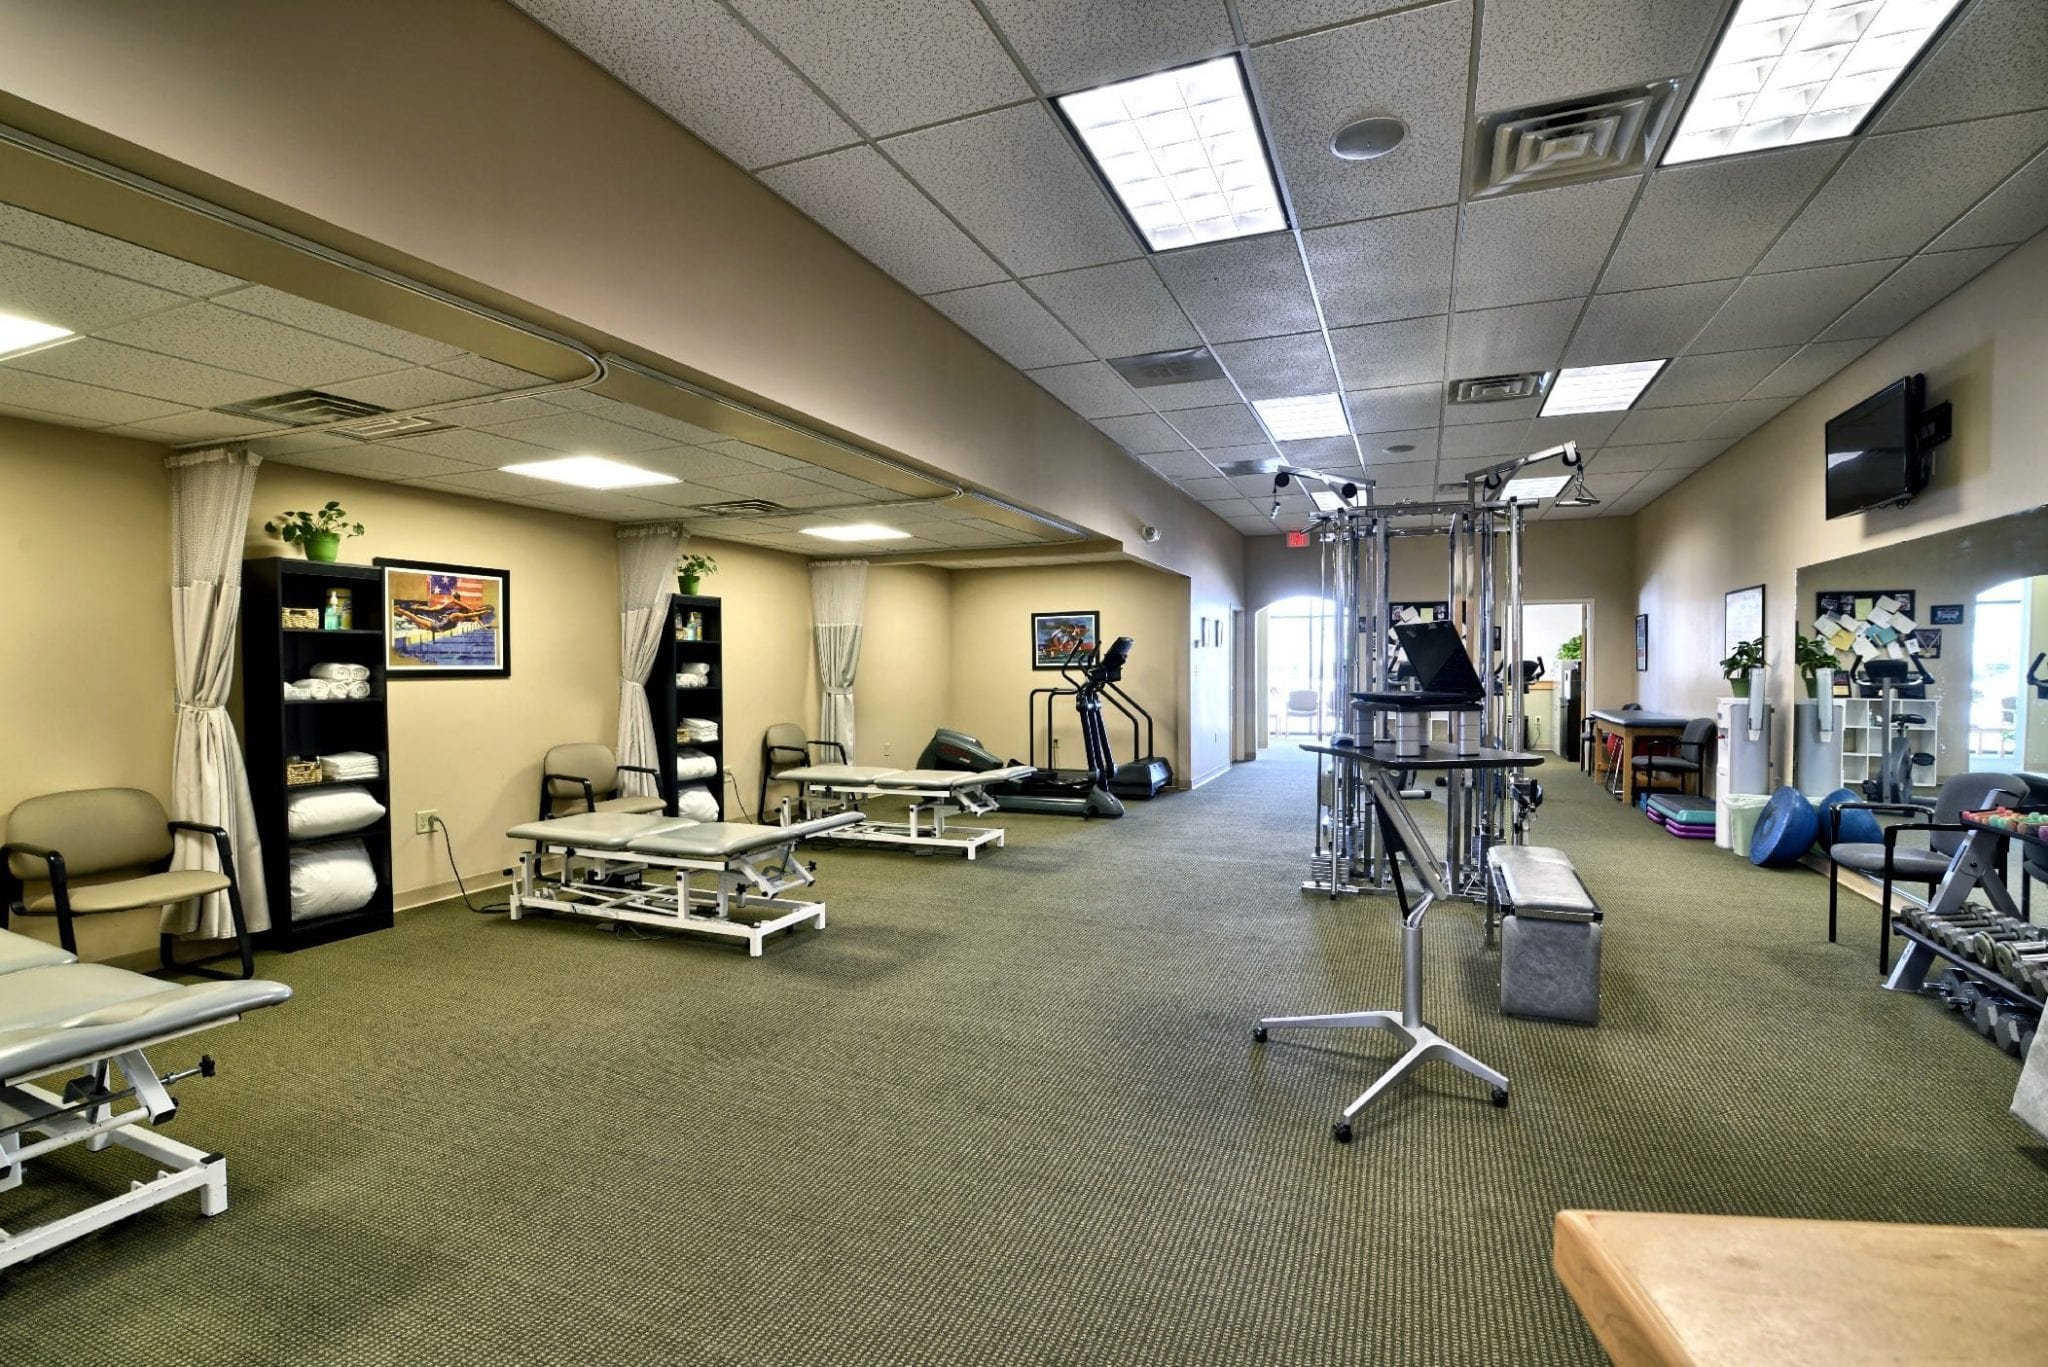 An image of the equipment at our physical therapy clinic in Epping, New Hampshire.